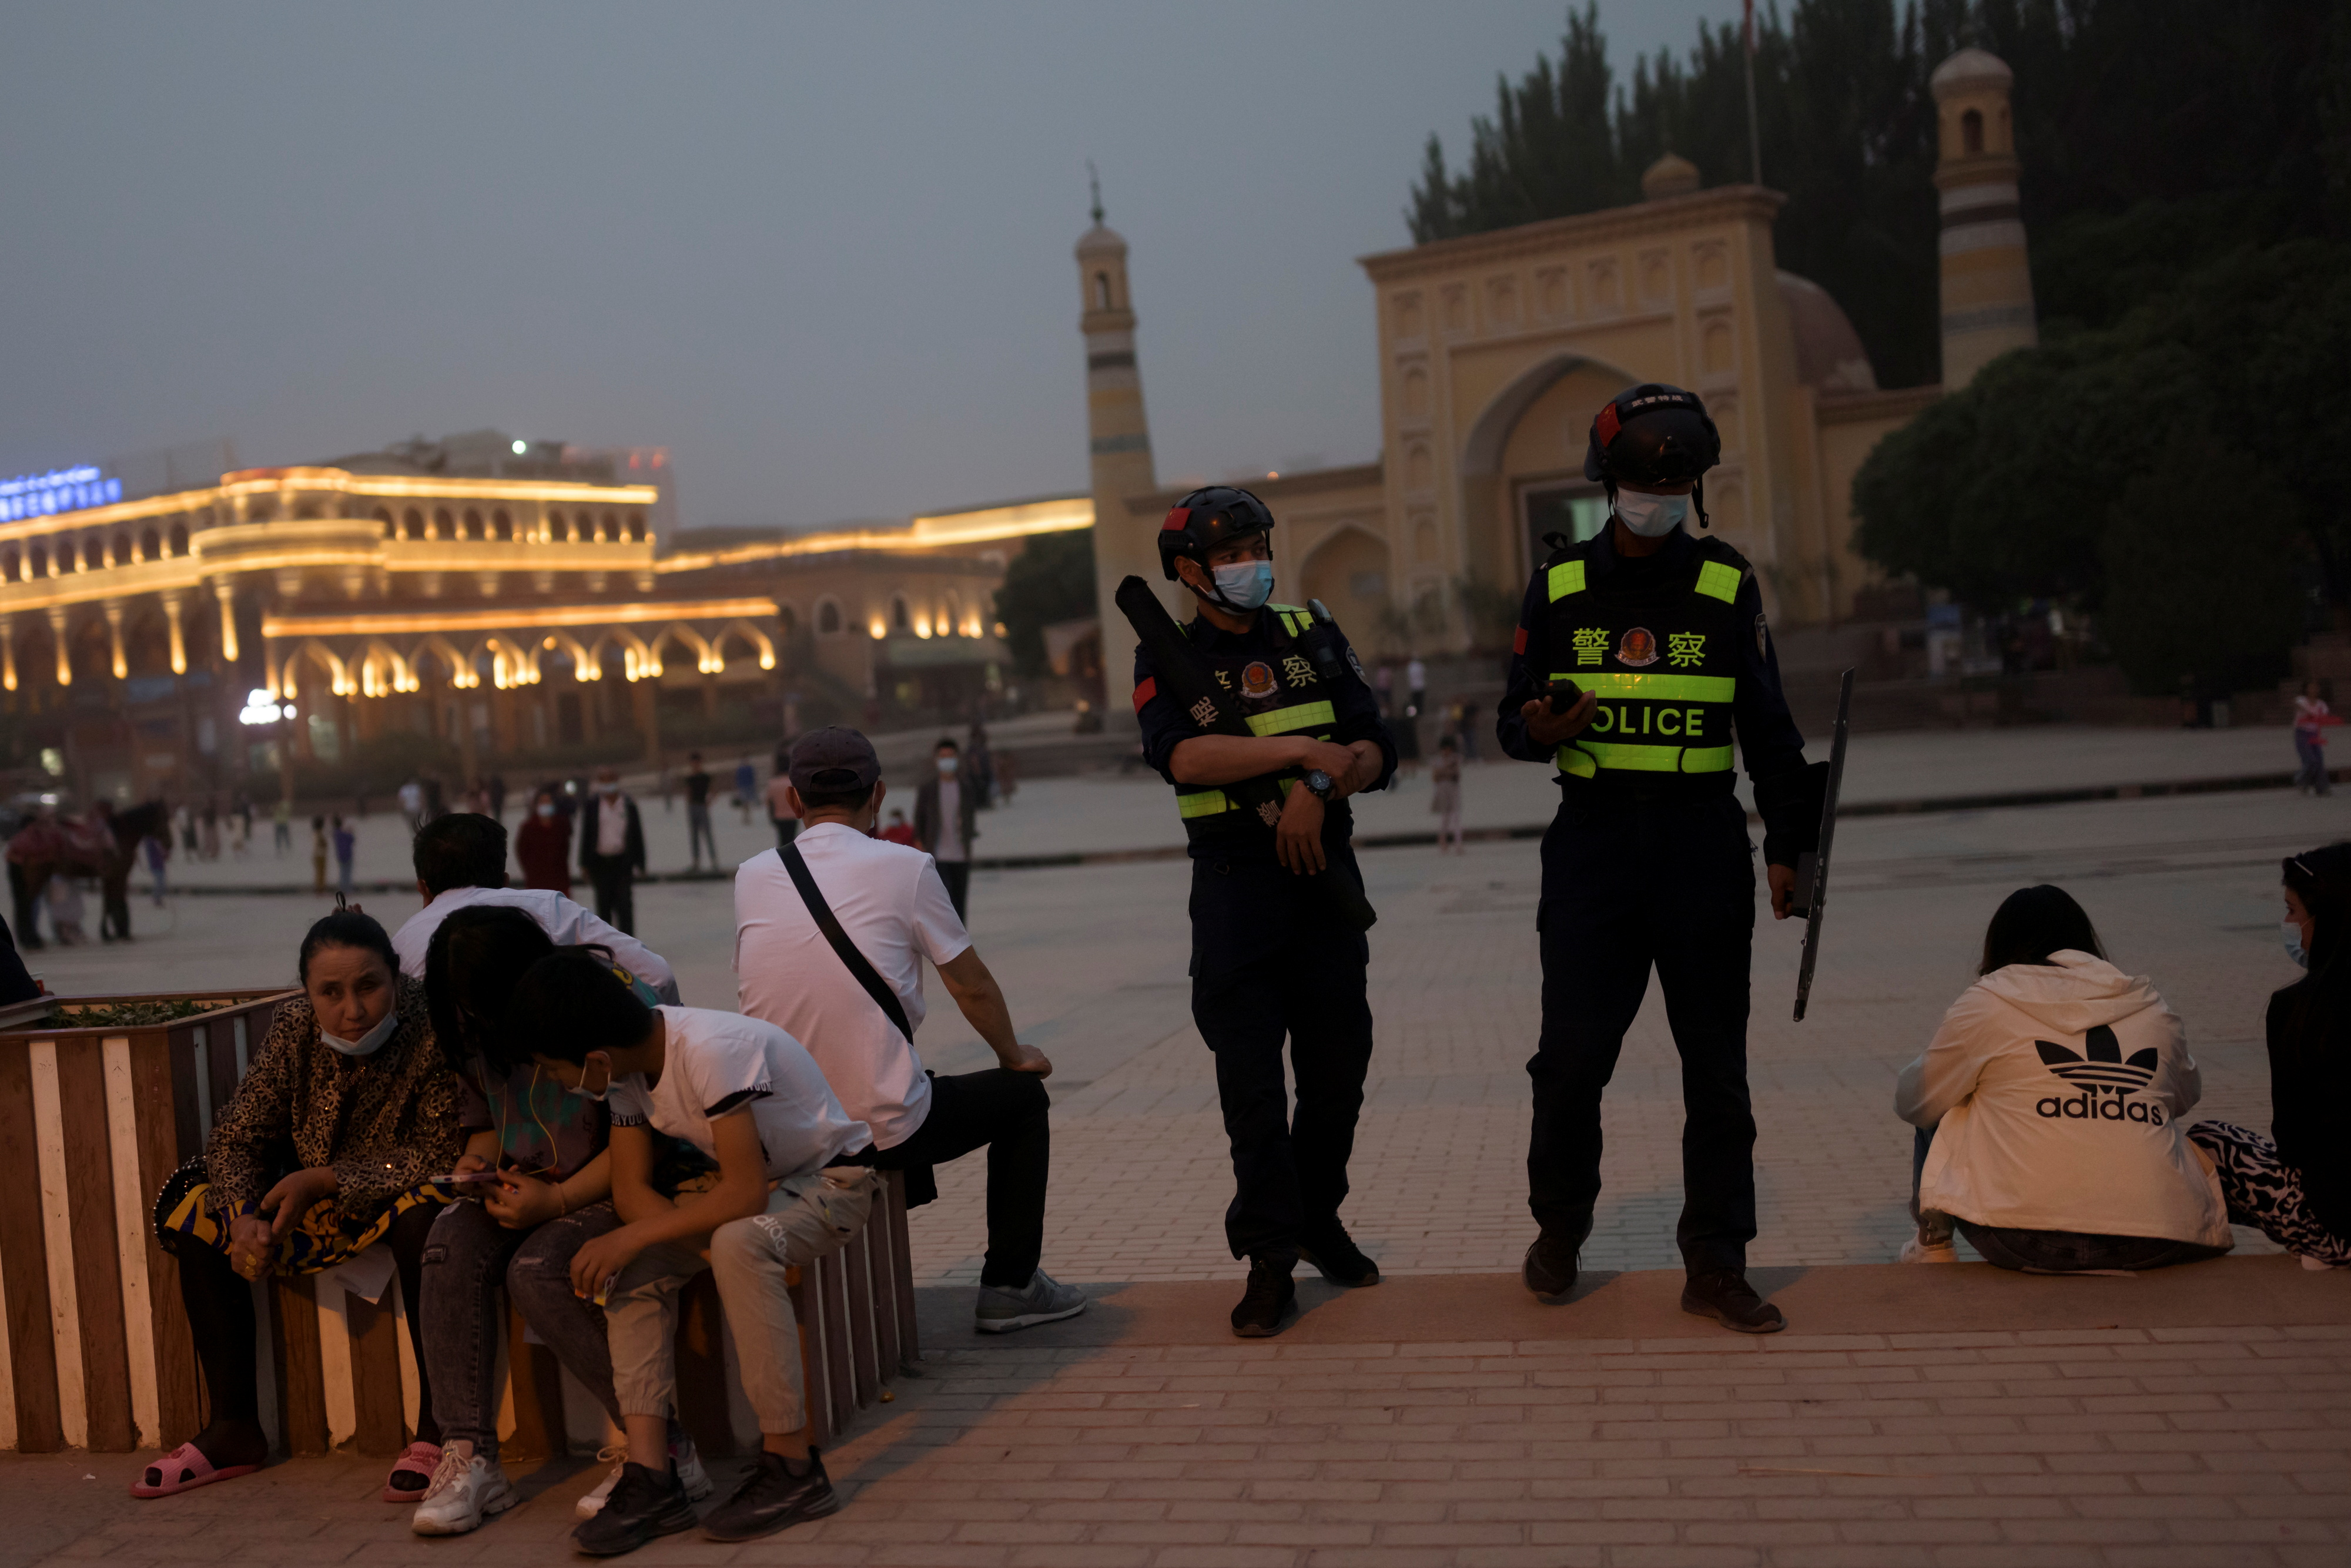 Police officers patrol the square in front of Id Kah Mosque in Kashgar, Xinjiang Uyghur Autonomous Region, China, May 3, 2021. REUTERS/Thomas Peter